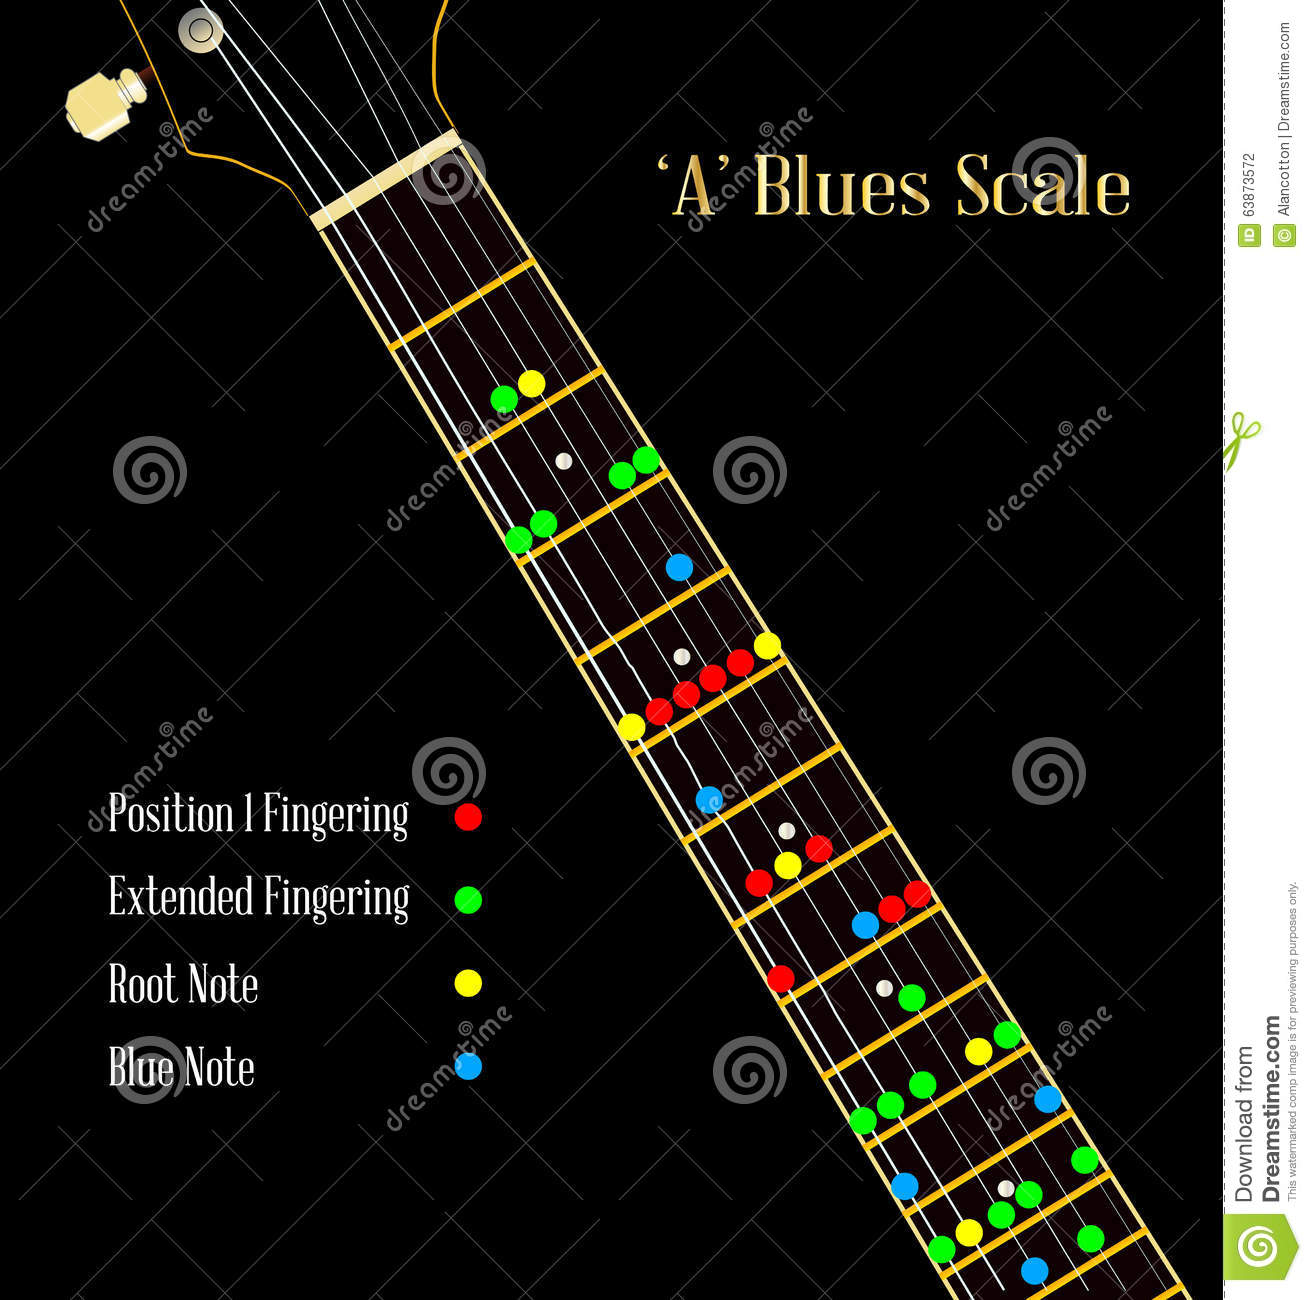 hight resolution of a guitar neck showing the blues pentatonic scale